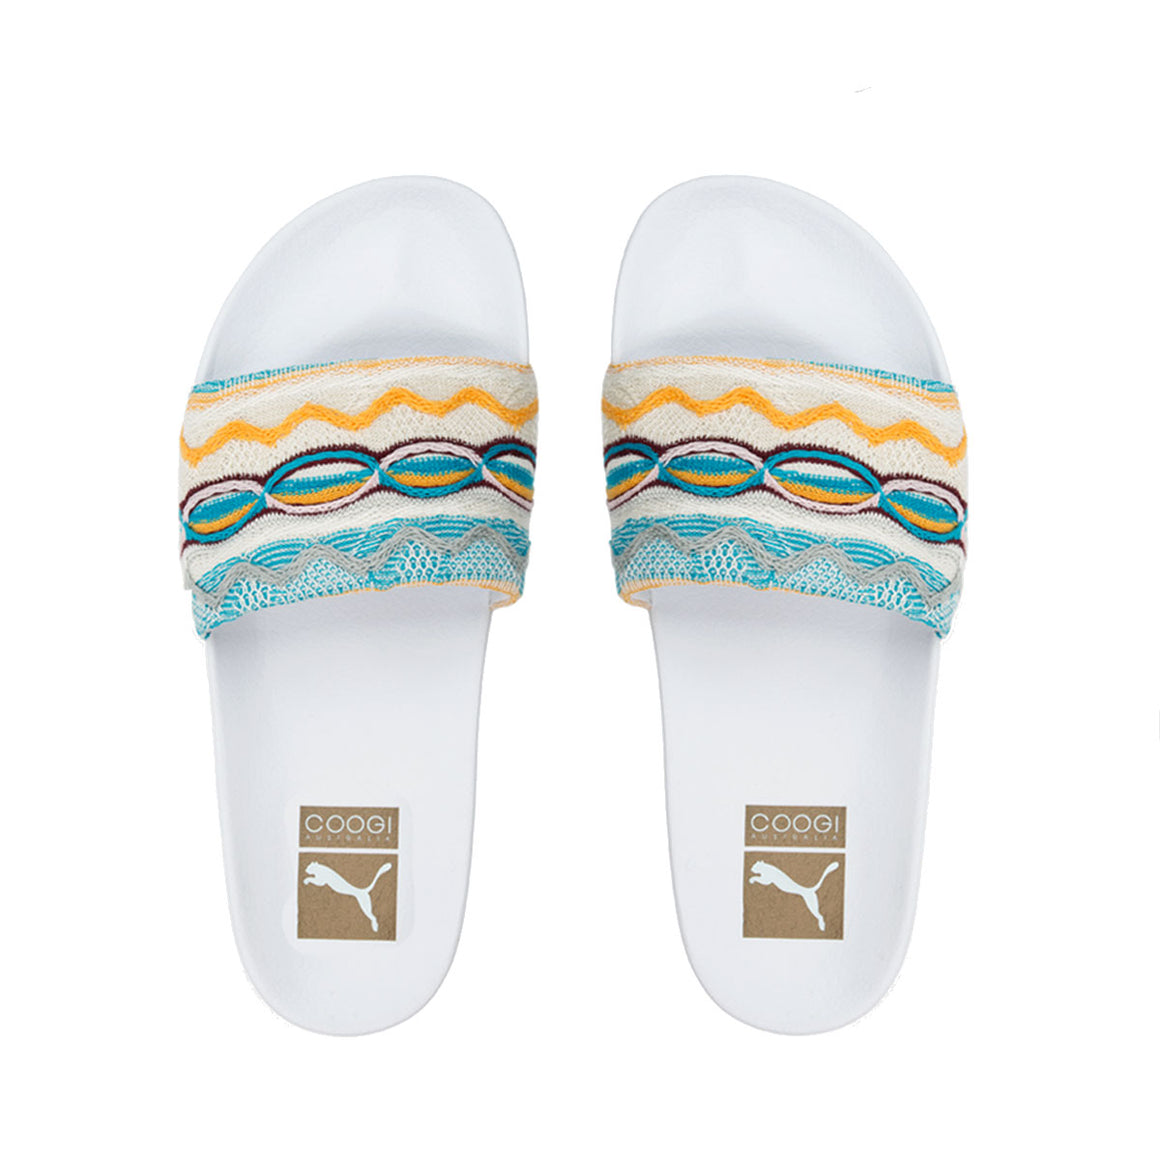 PUMA X COOGI WOMEN'S LEADCAT SLIDER